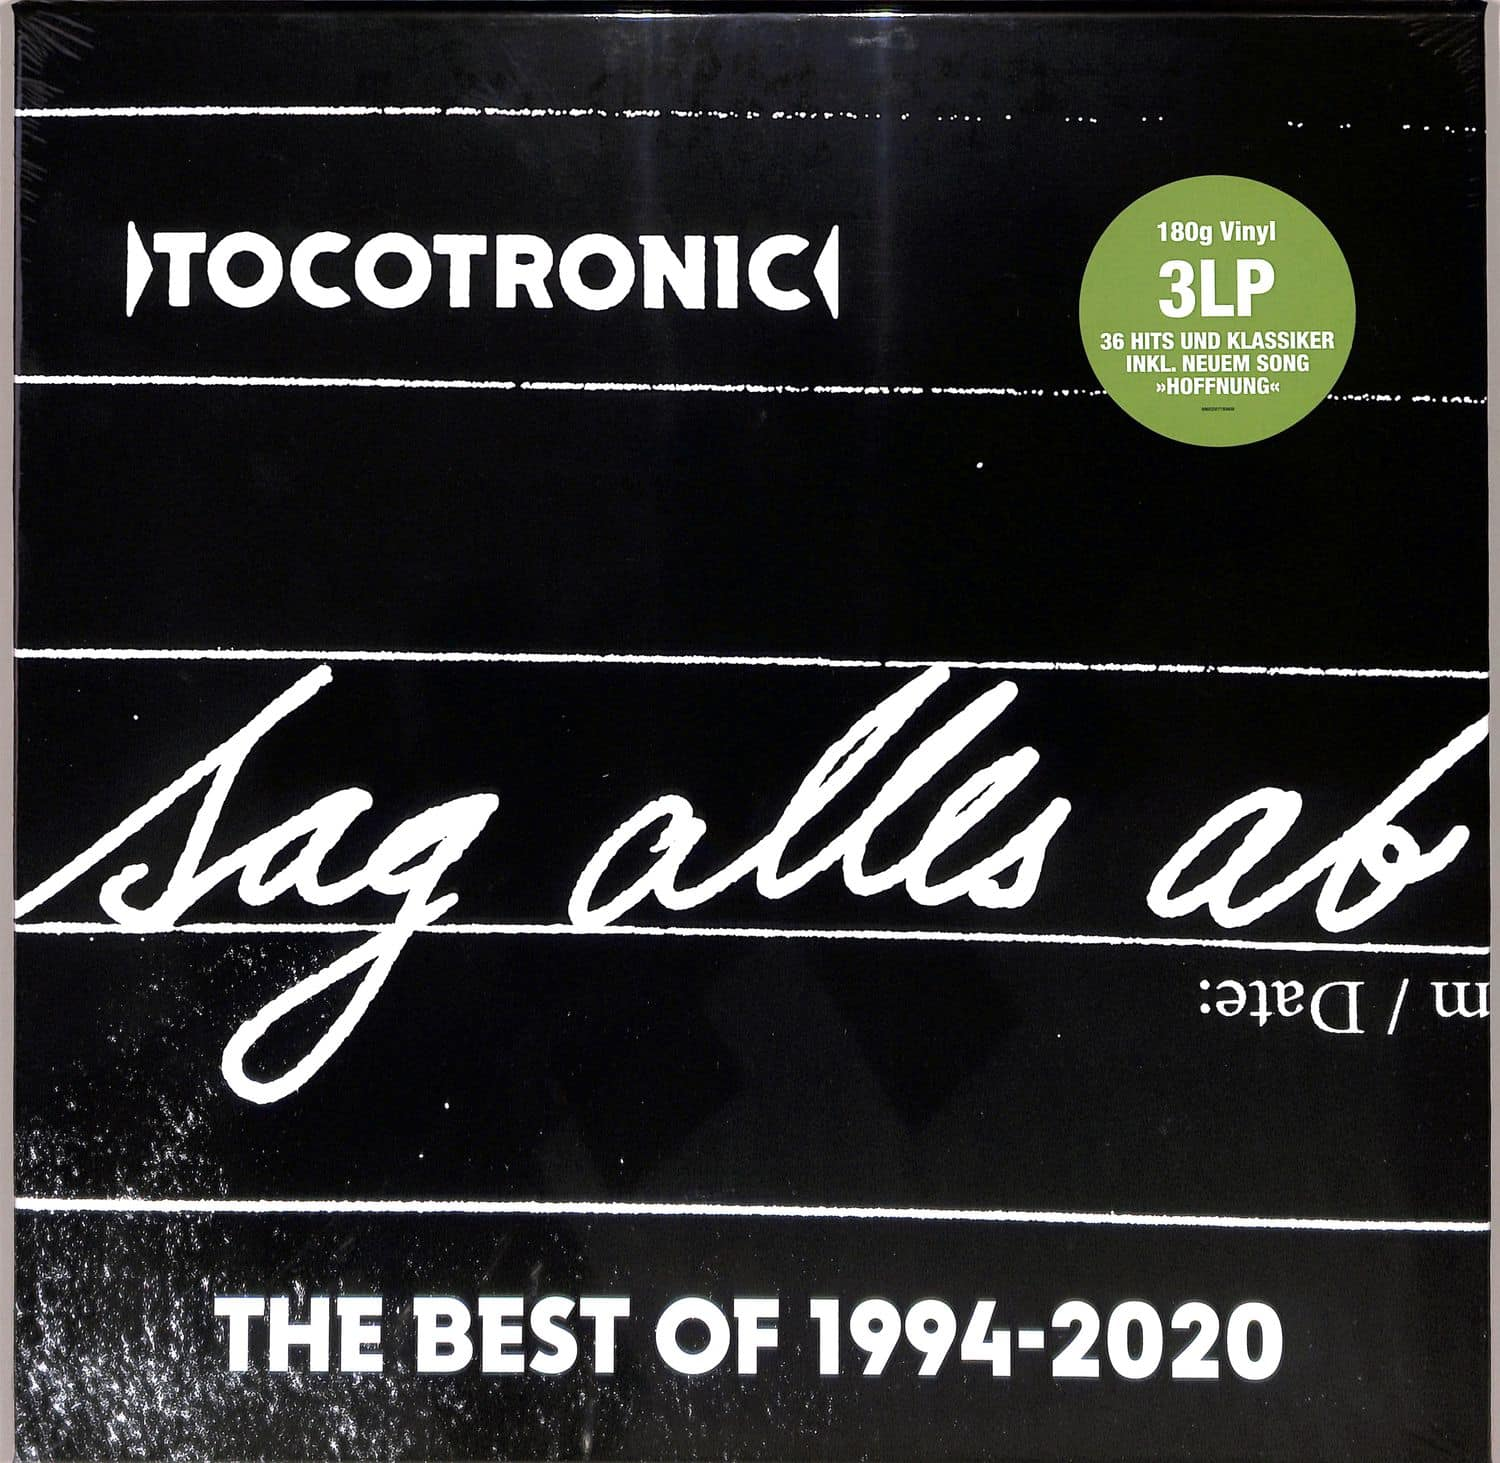 Tocotronic - SAG ALLES AB - BEST OF 1994-2020